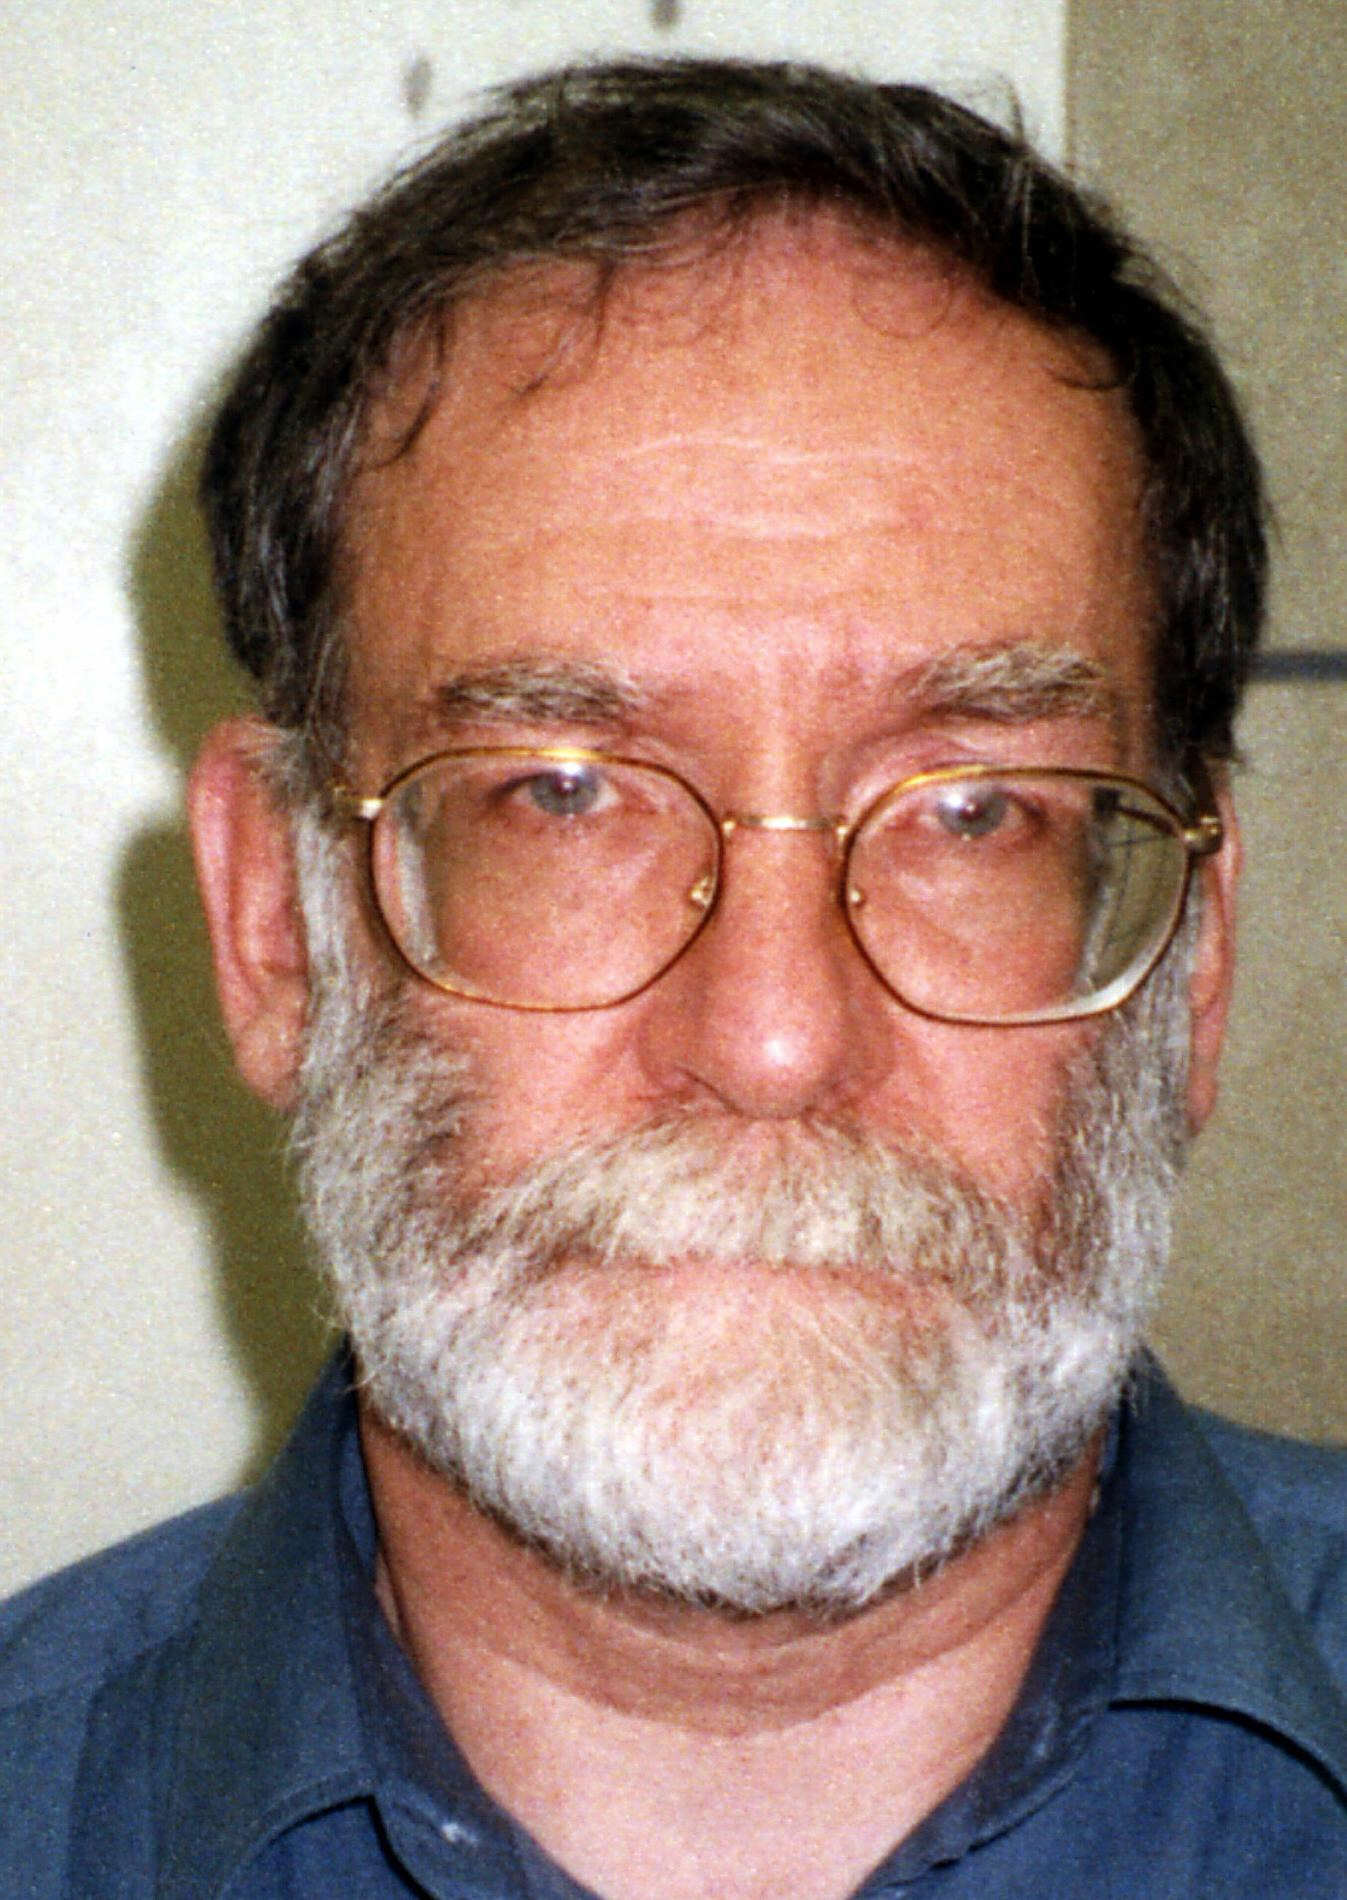 Top Secret Documents Reveal Why Harold Shipman Committed Suicide GettyImages 2863450